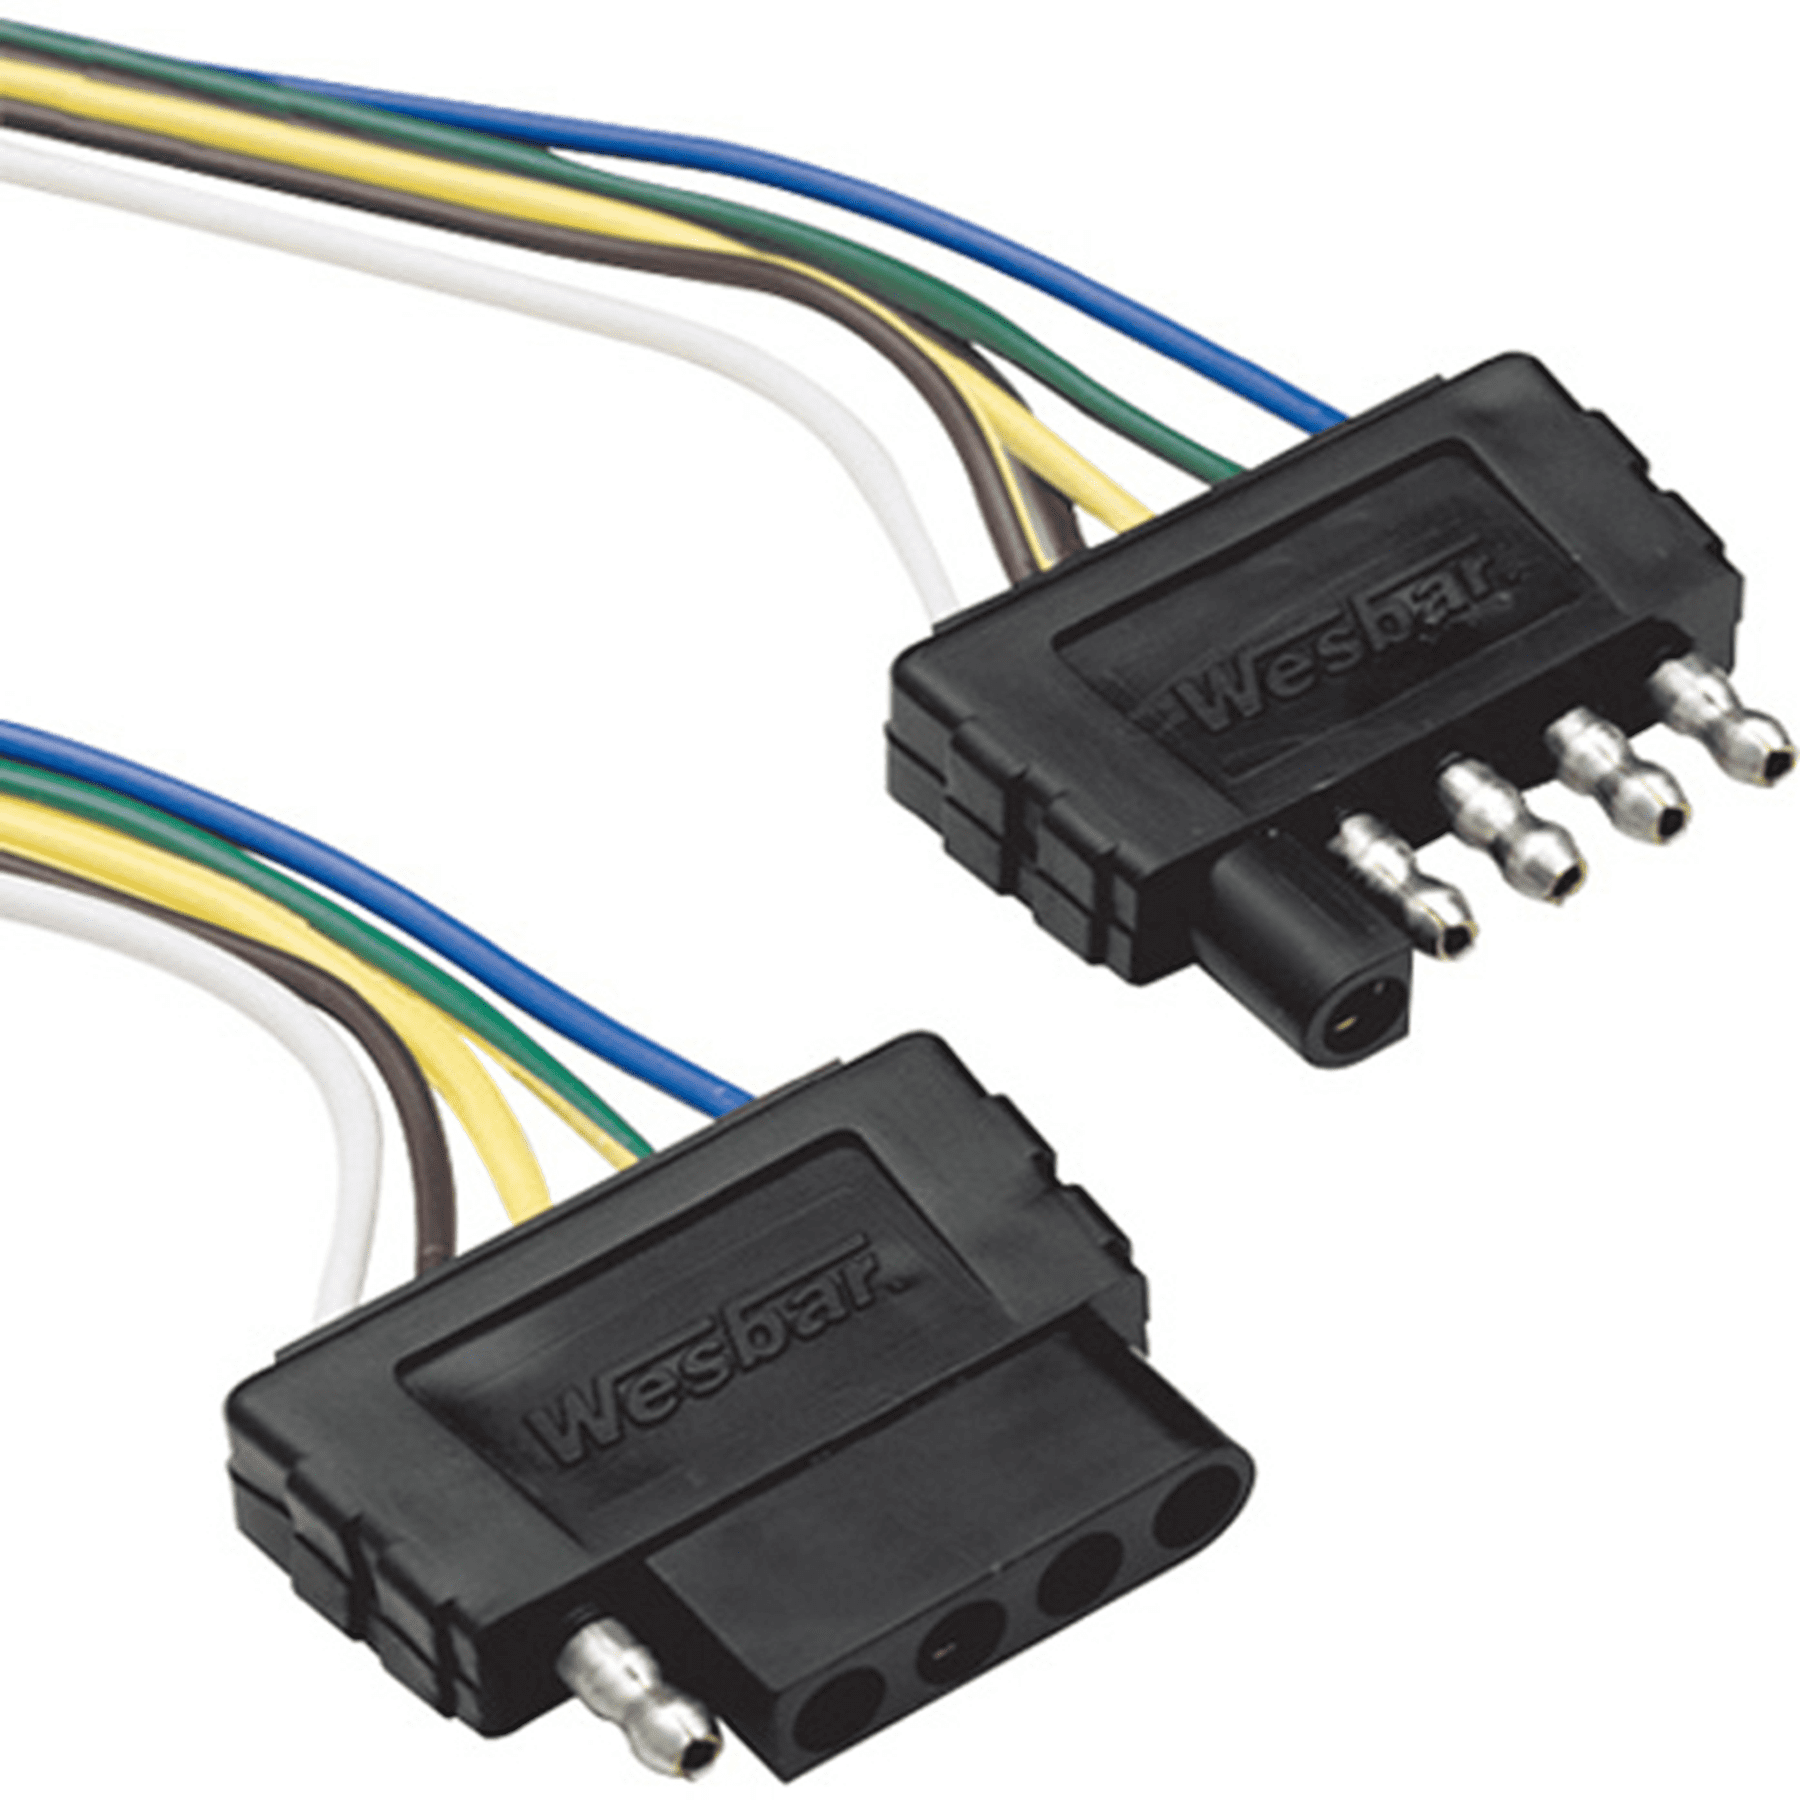 tow ready 5 way flat 72 car end wiring harness. Black Bedroom Furniture Sets. Home Design Ideas